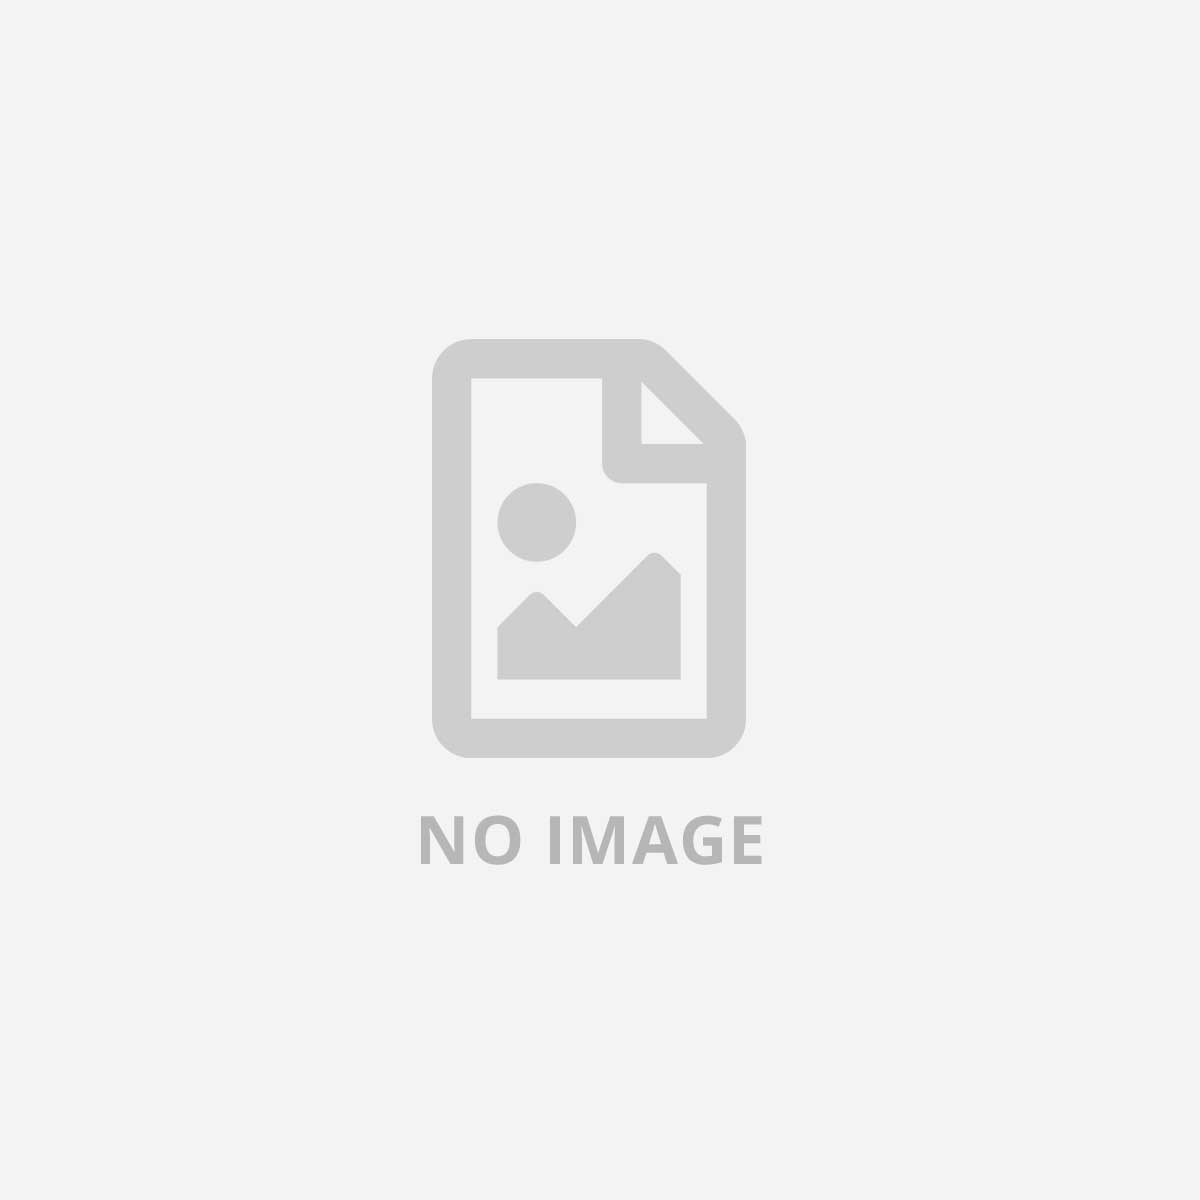 EMERSON NETWORK POWER SISTEMA CRV 40KW CHILLEDD WATER